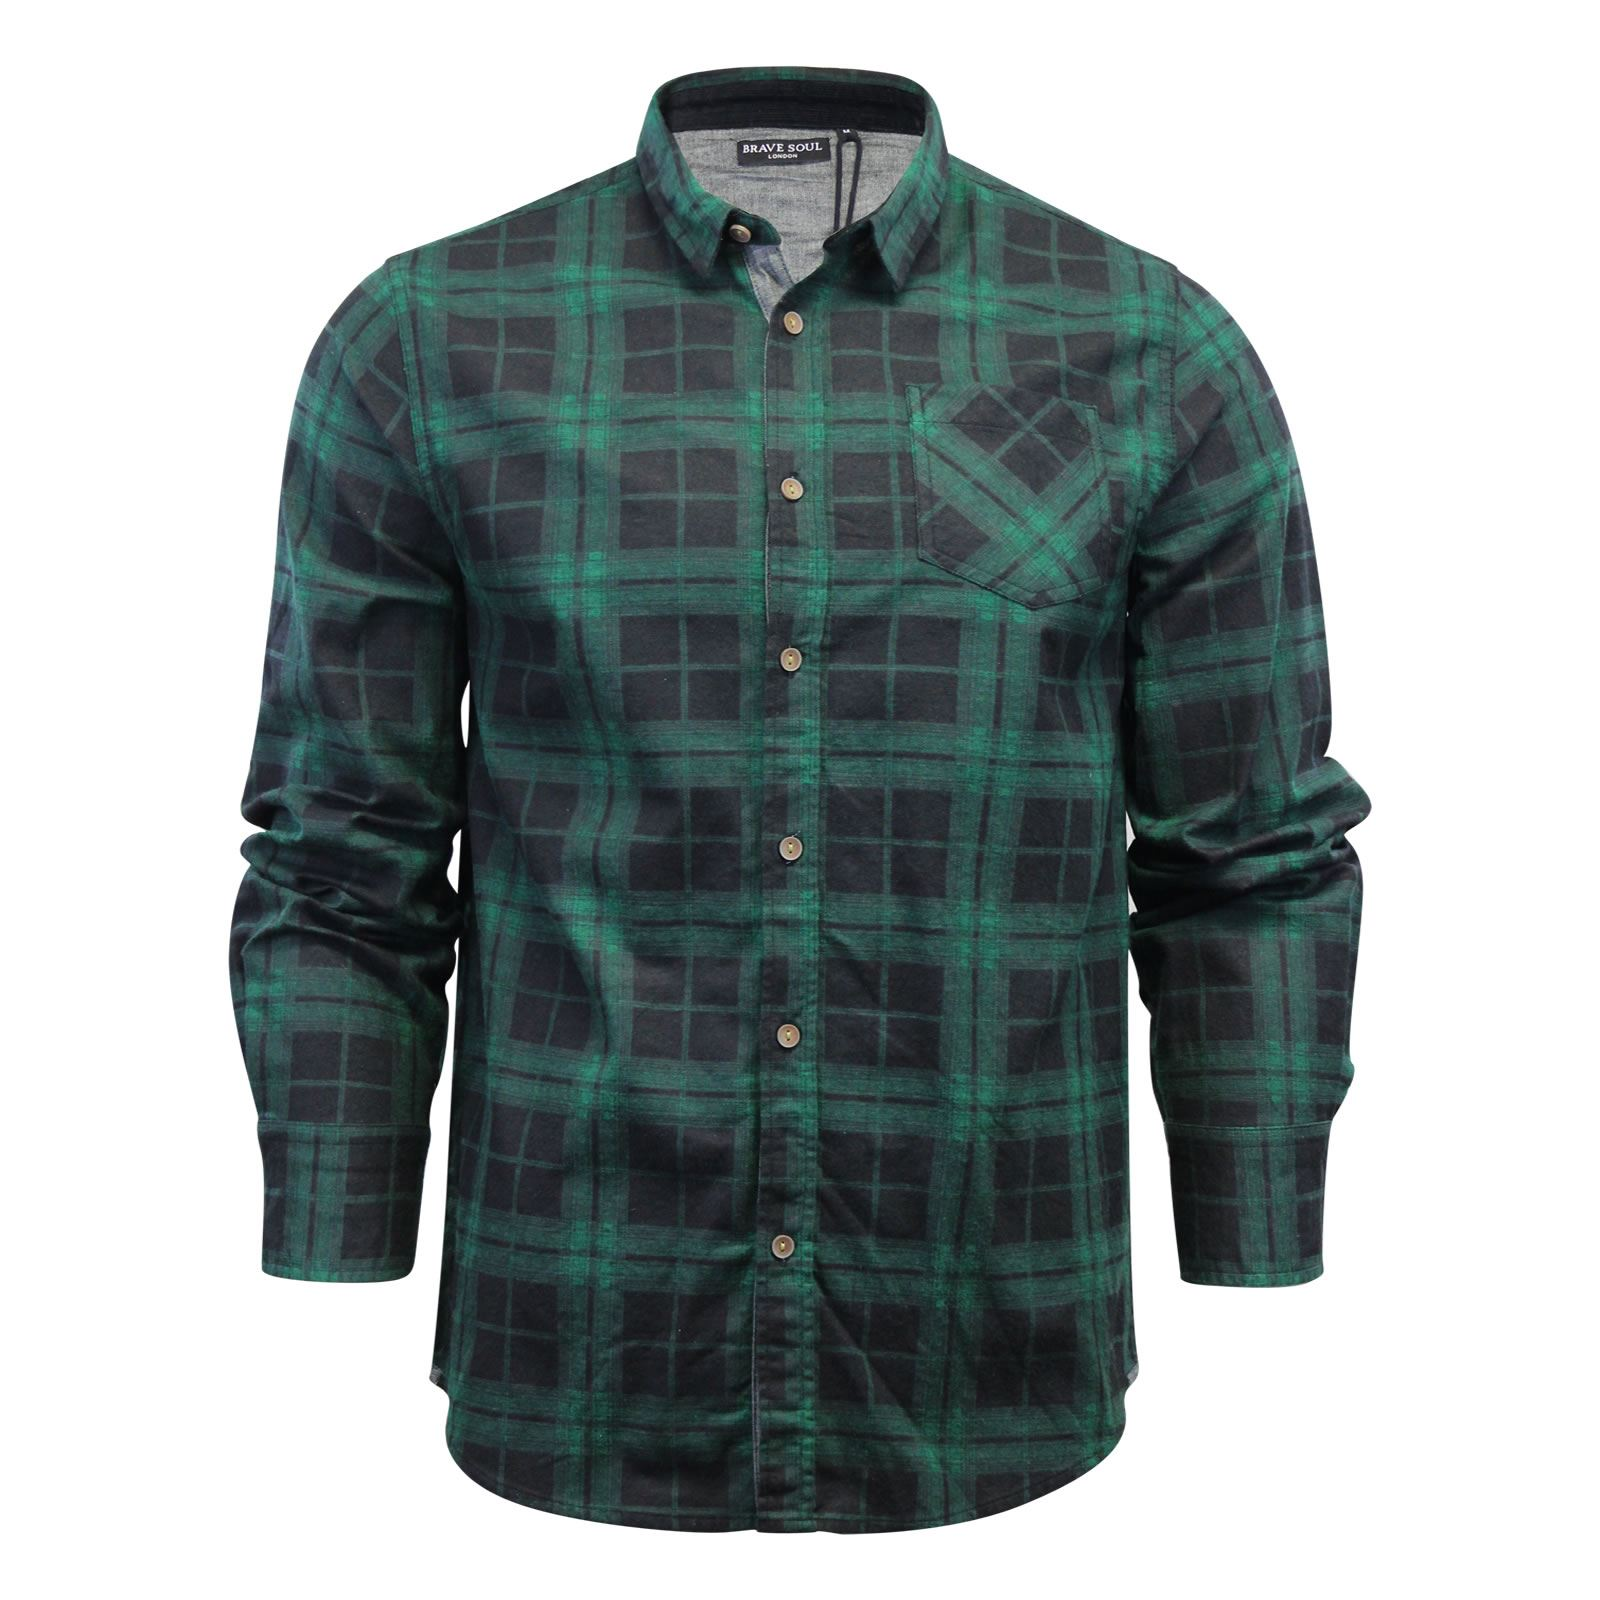 Brave-Soul-Mens-Check-Shirt-Flannel-Brushed-Cotton-Long-Sleeve-Casual-Top thumbnail 53